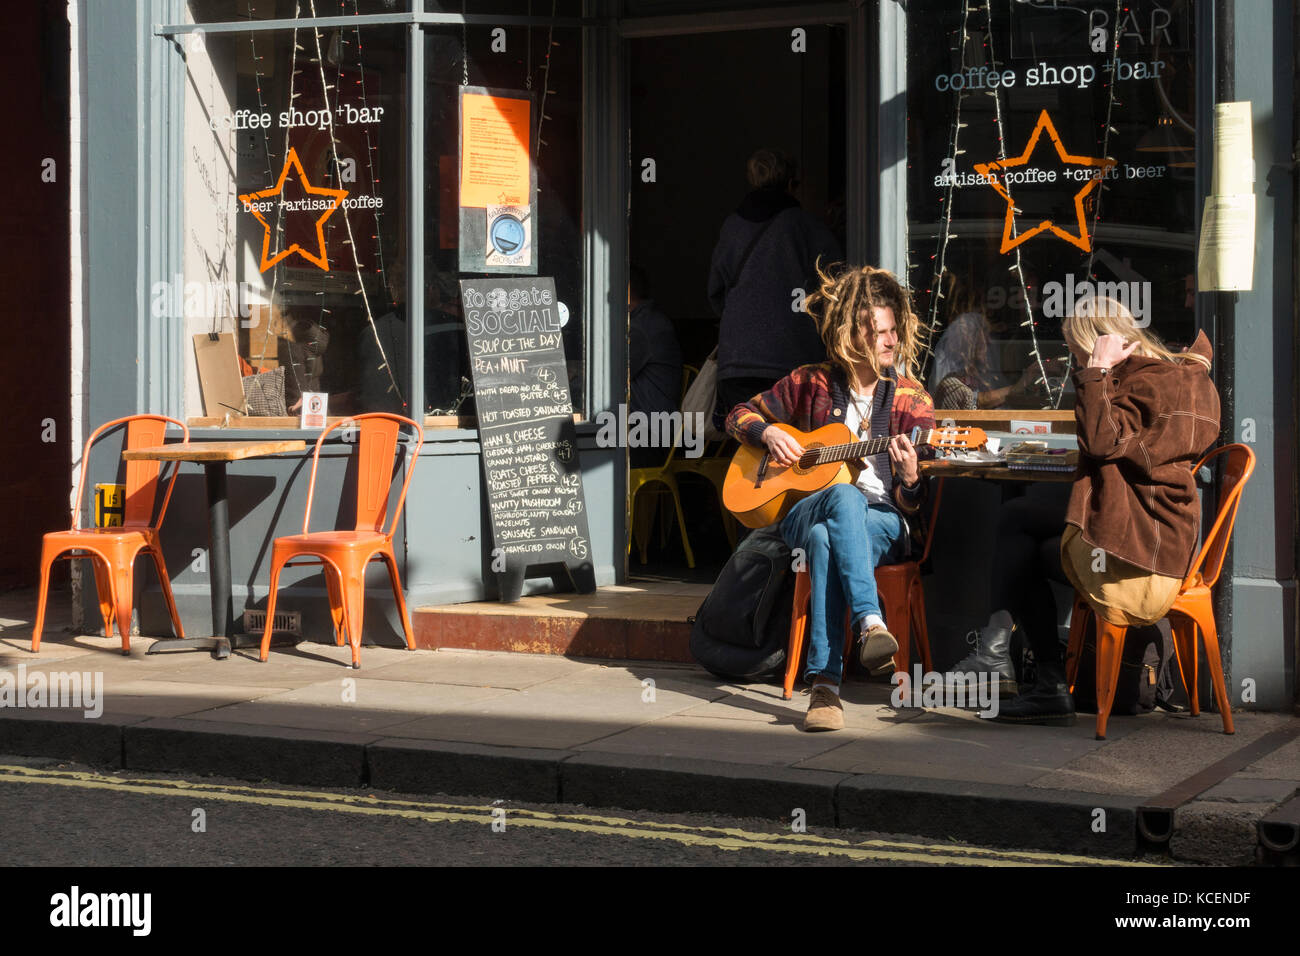 Young couple sit in sun at a table outside The Fossgate Social coffee shop & bar, York, England, UK. The man - Stock Image